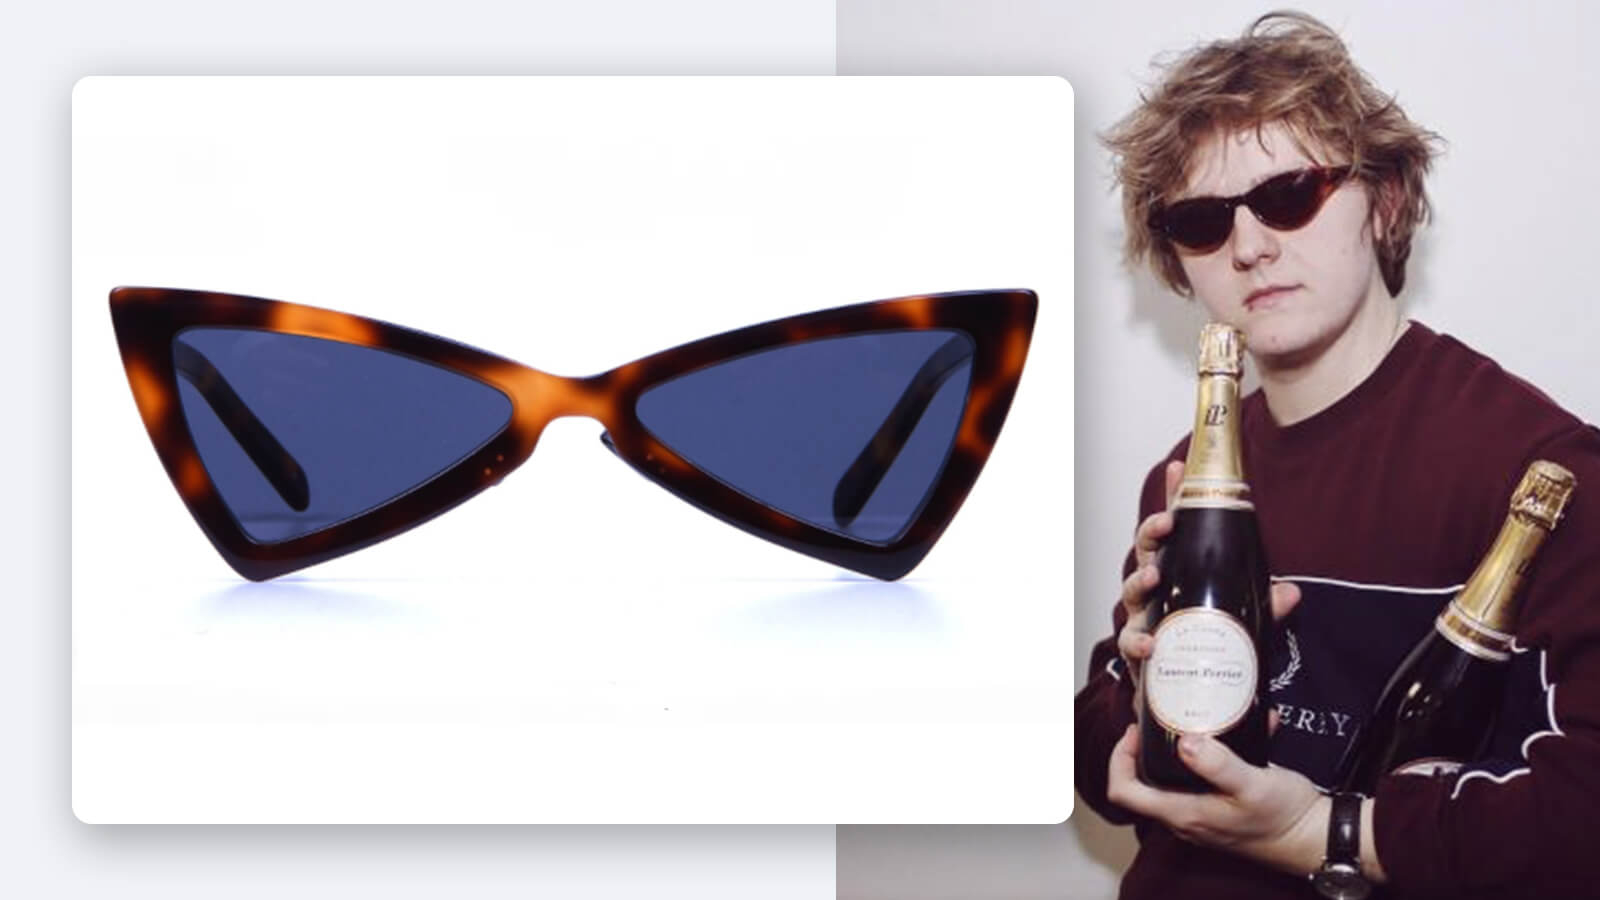 Browner and Shinier: Lewis Capaldi Brown Tortoiseshell sunglasses